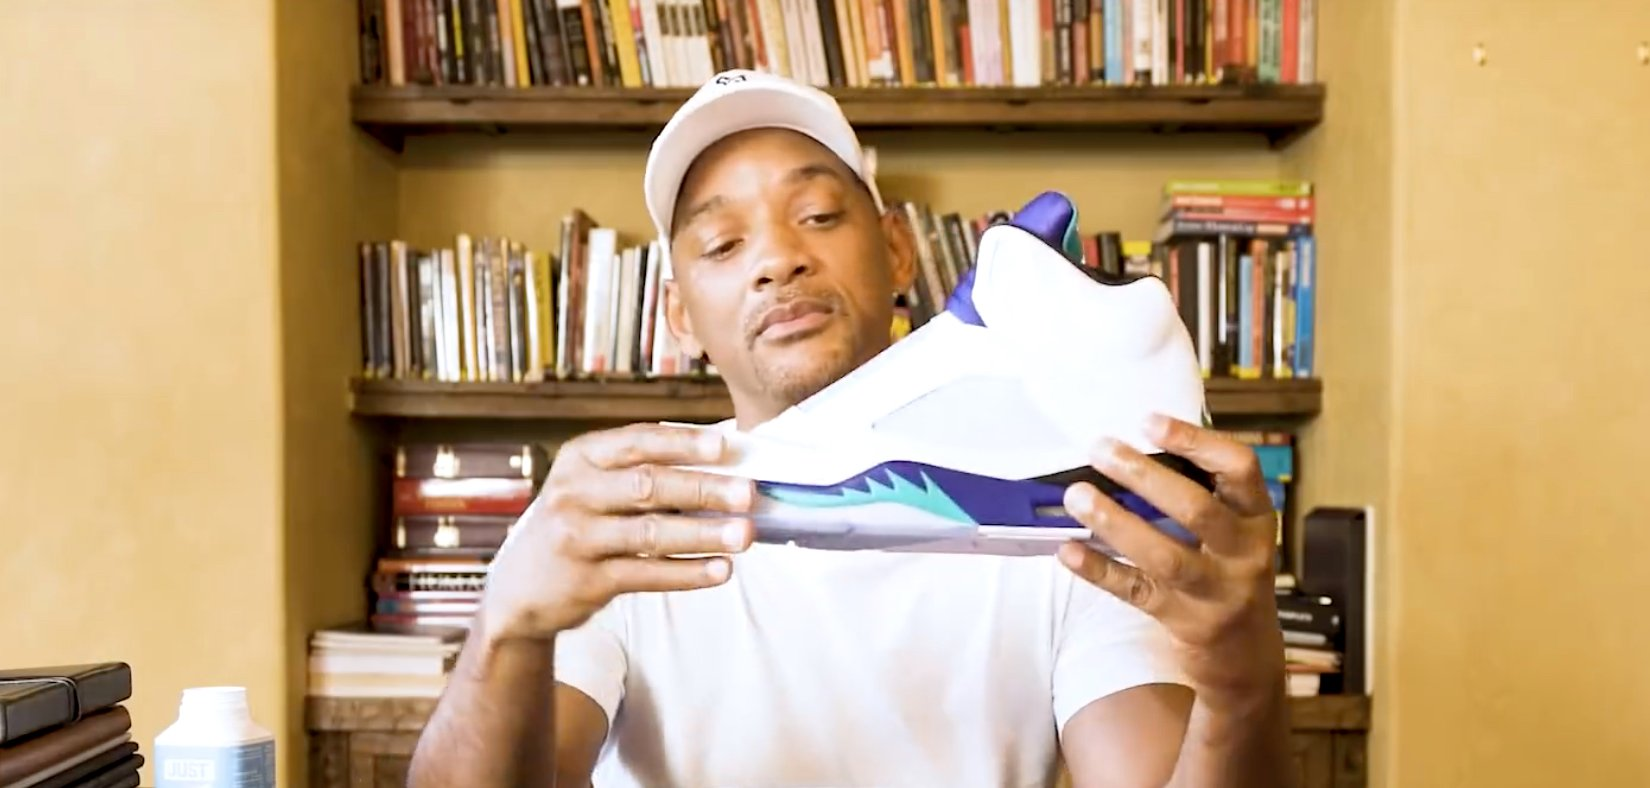 nike air jordan 5 fresh prince will smith